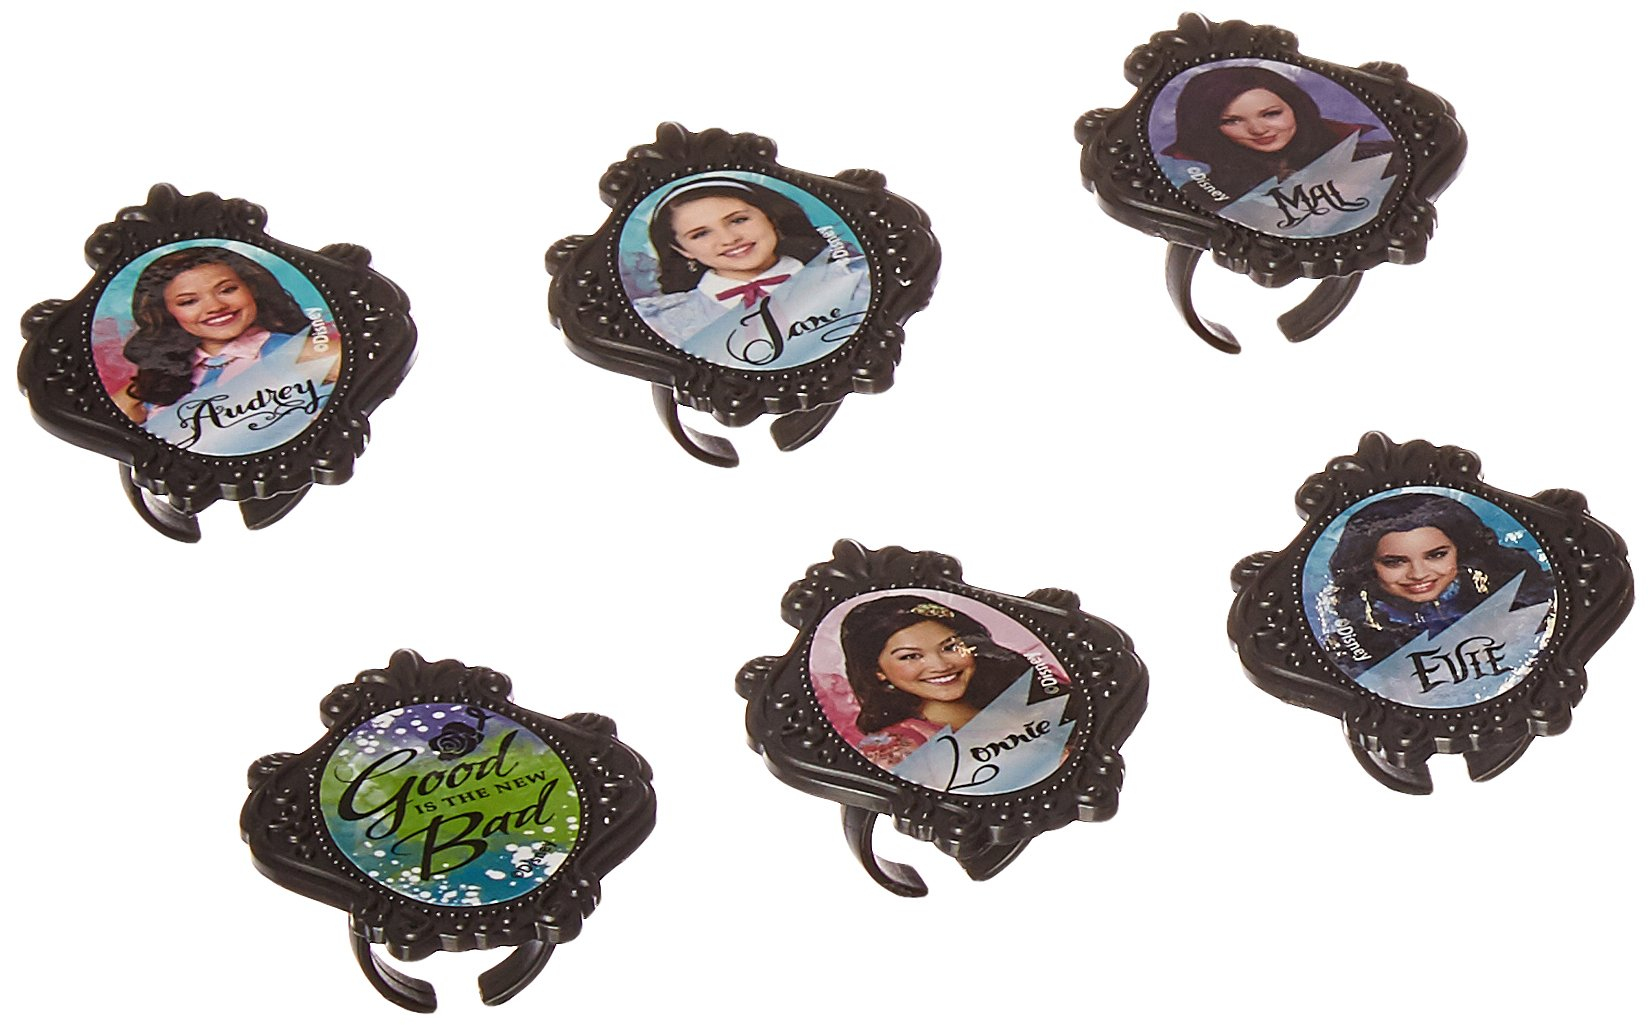 24 Disney Descendants Cupcake Rings